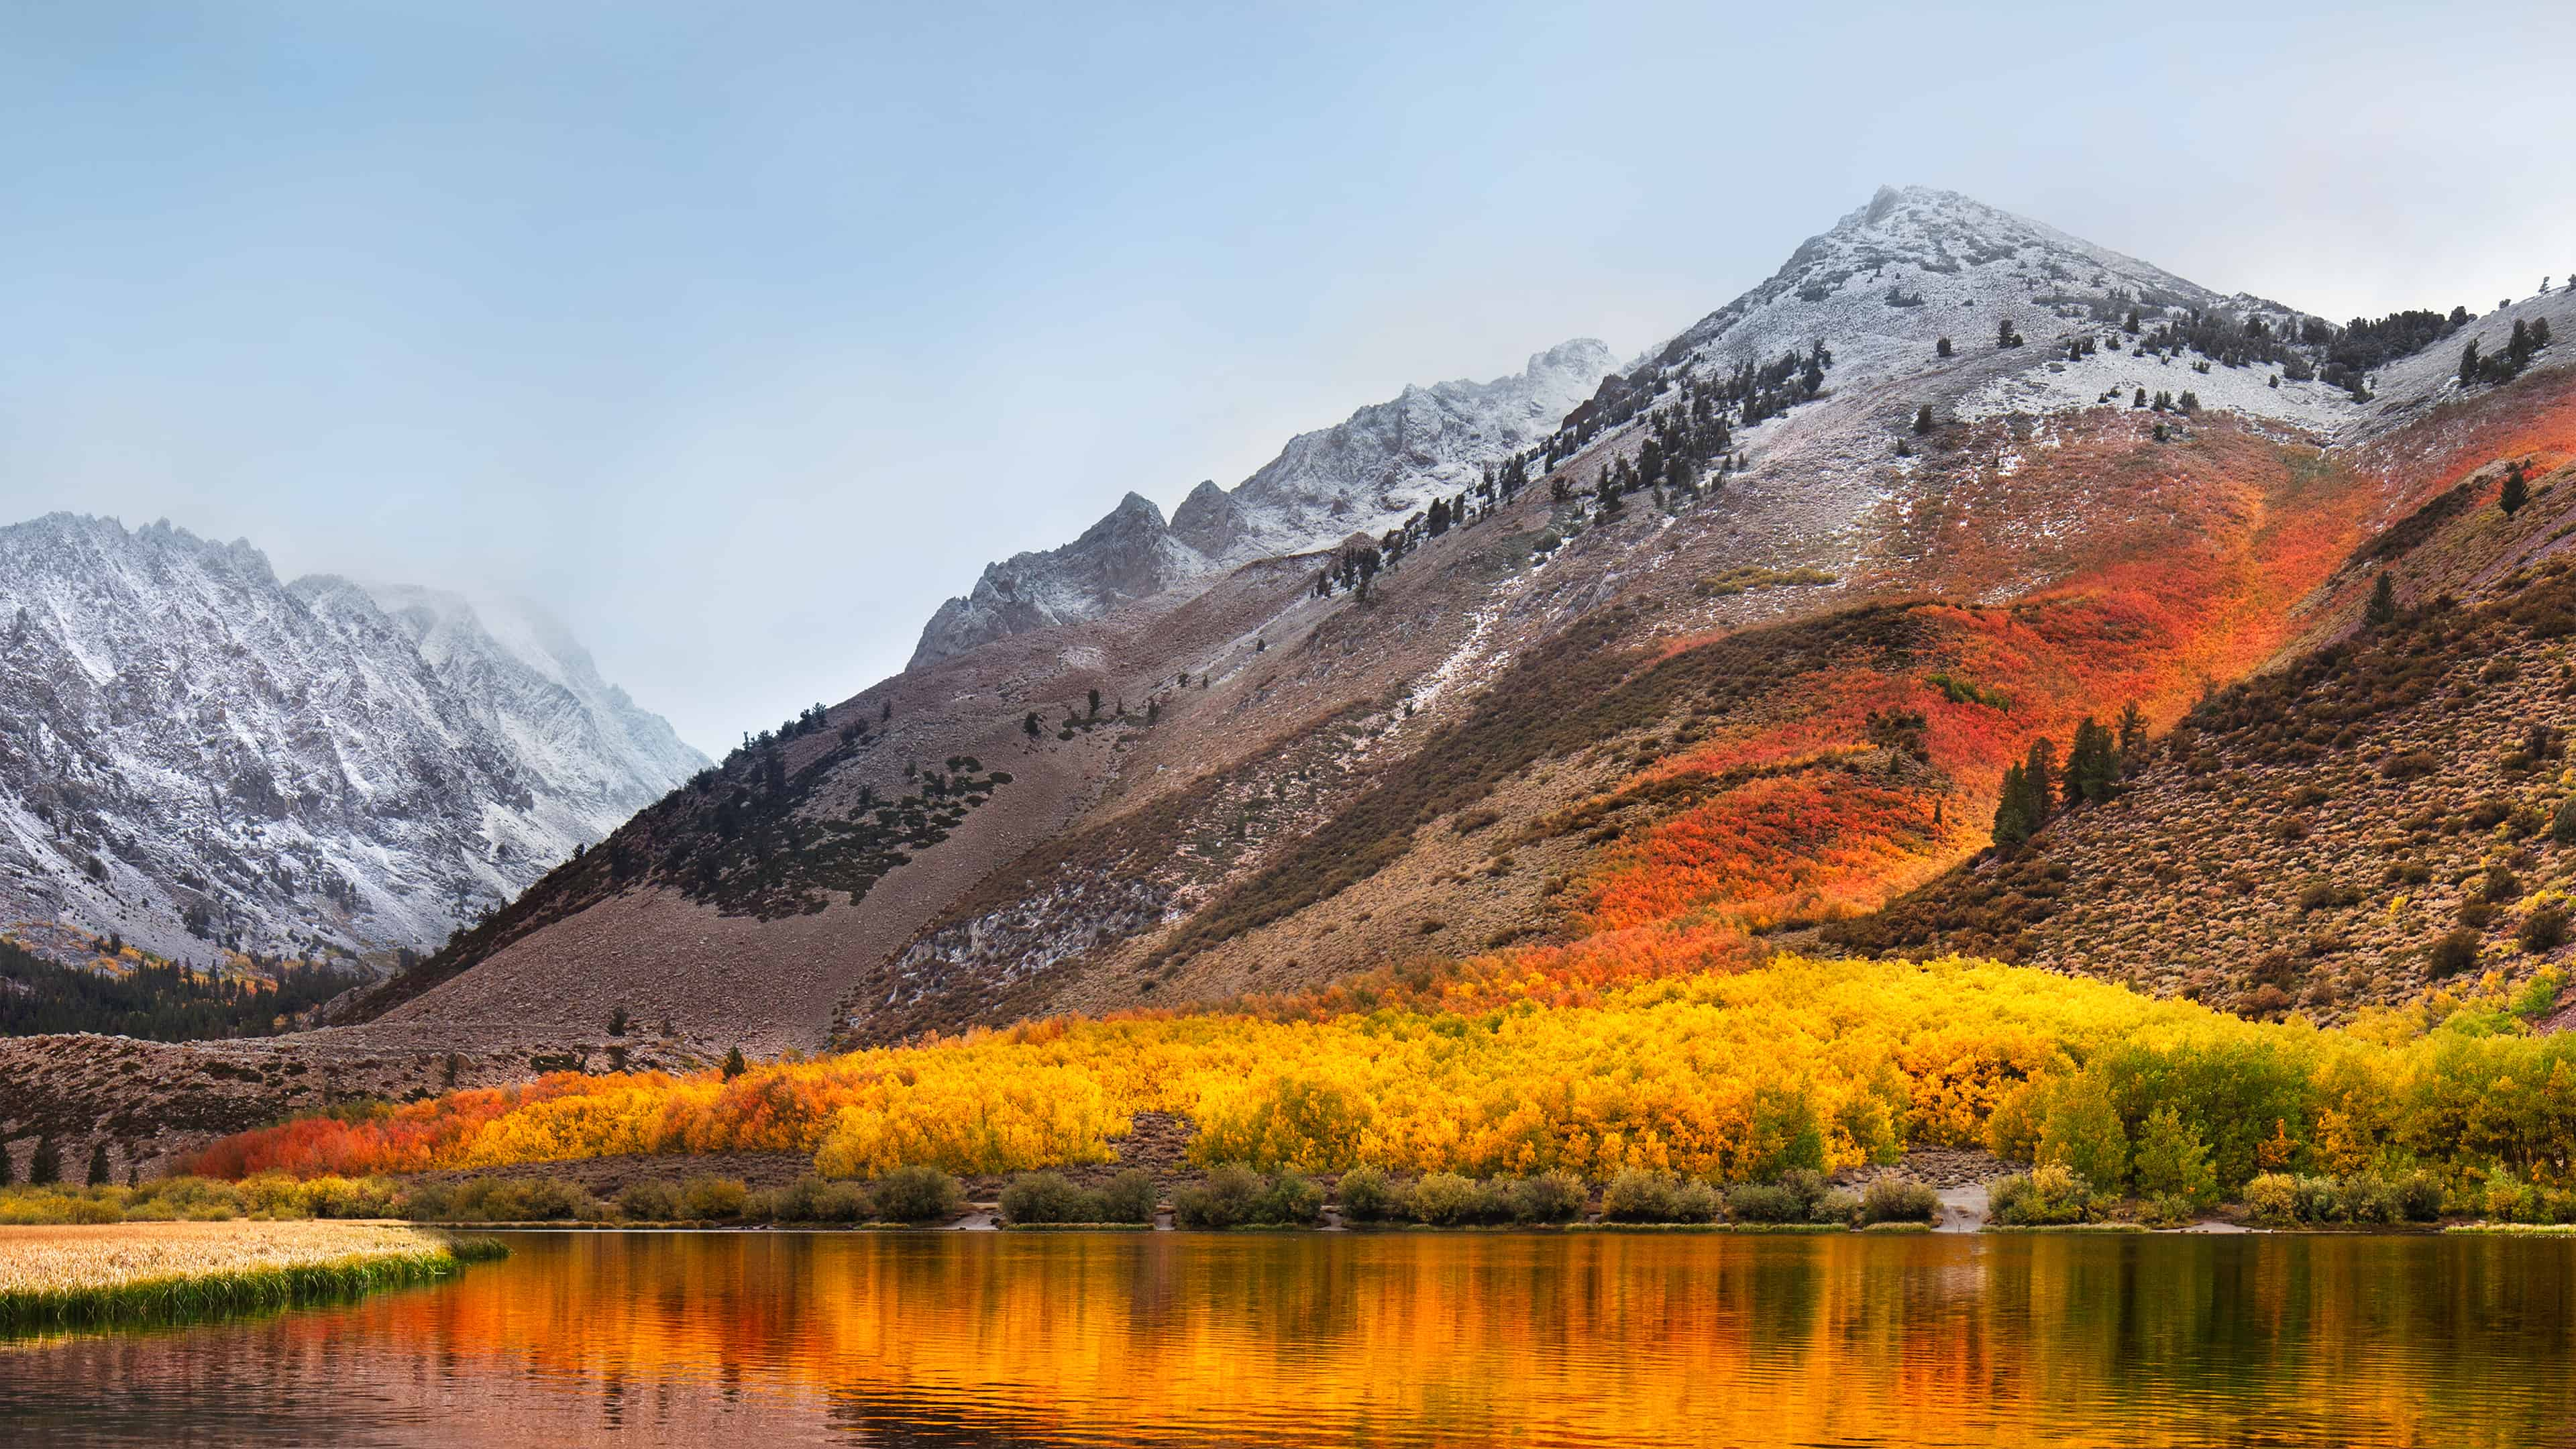 Mac OSX 1013 High Sierra Background UHD 4K Wallpaper Pixelz 3840x2160